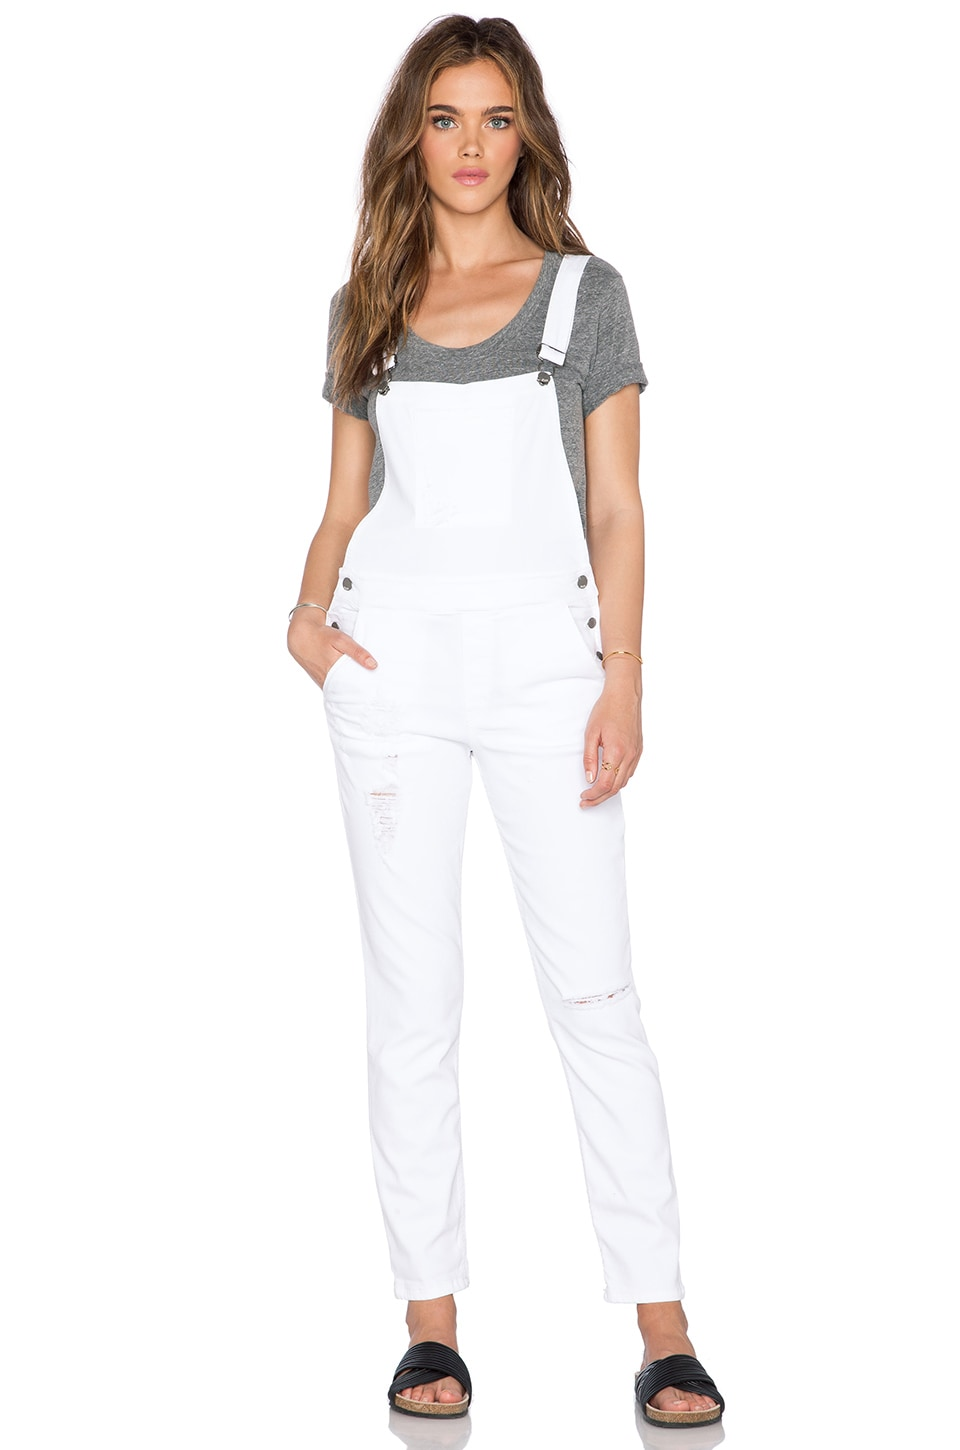 a.c.e. Bixie Overall in White